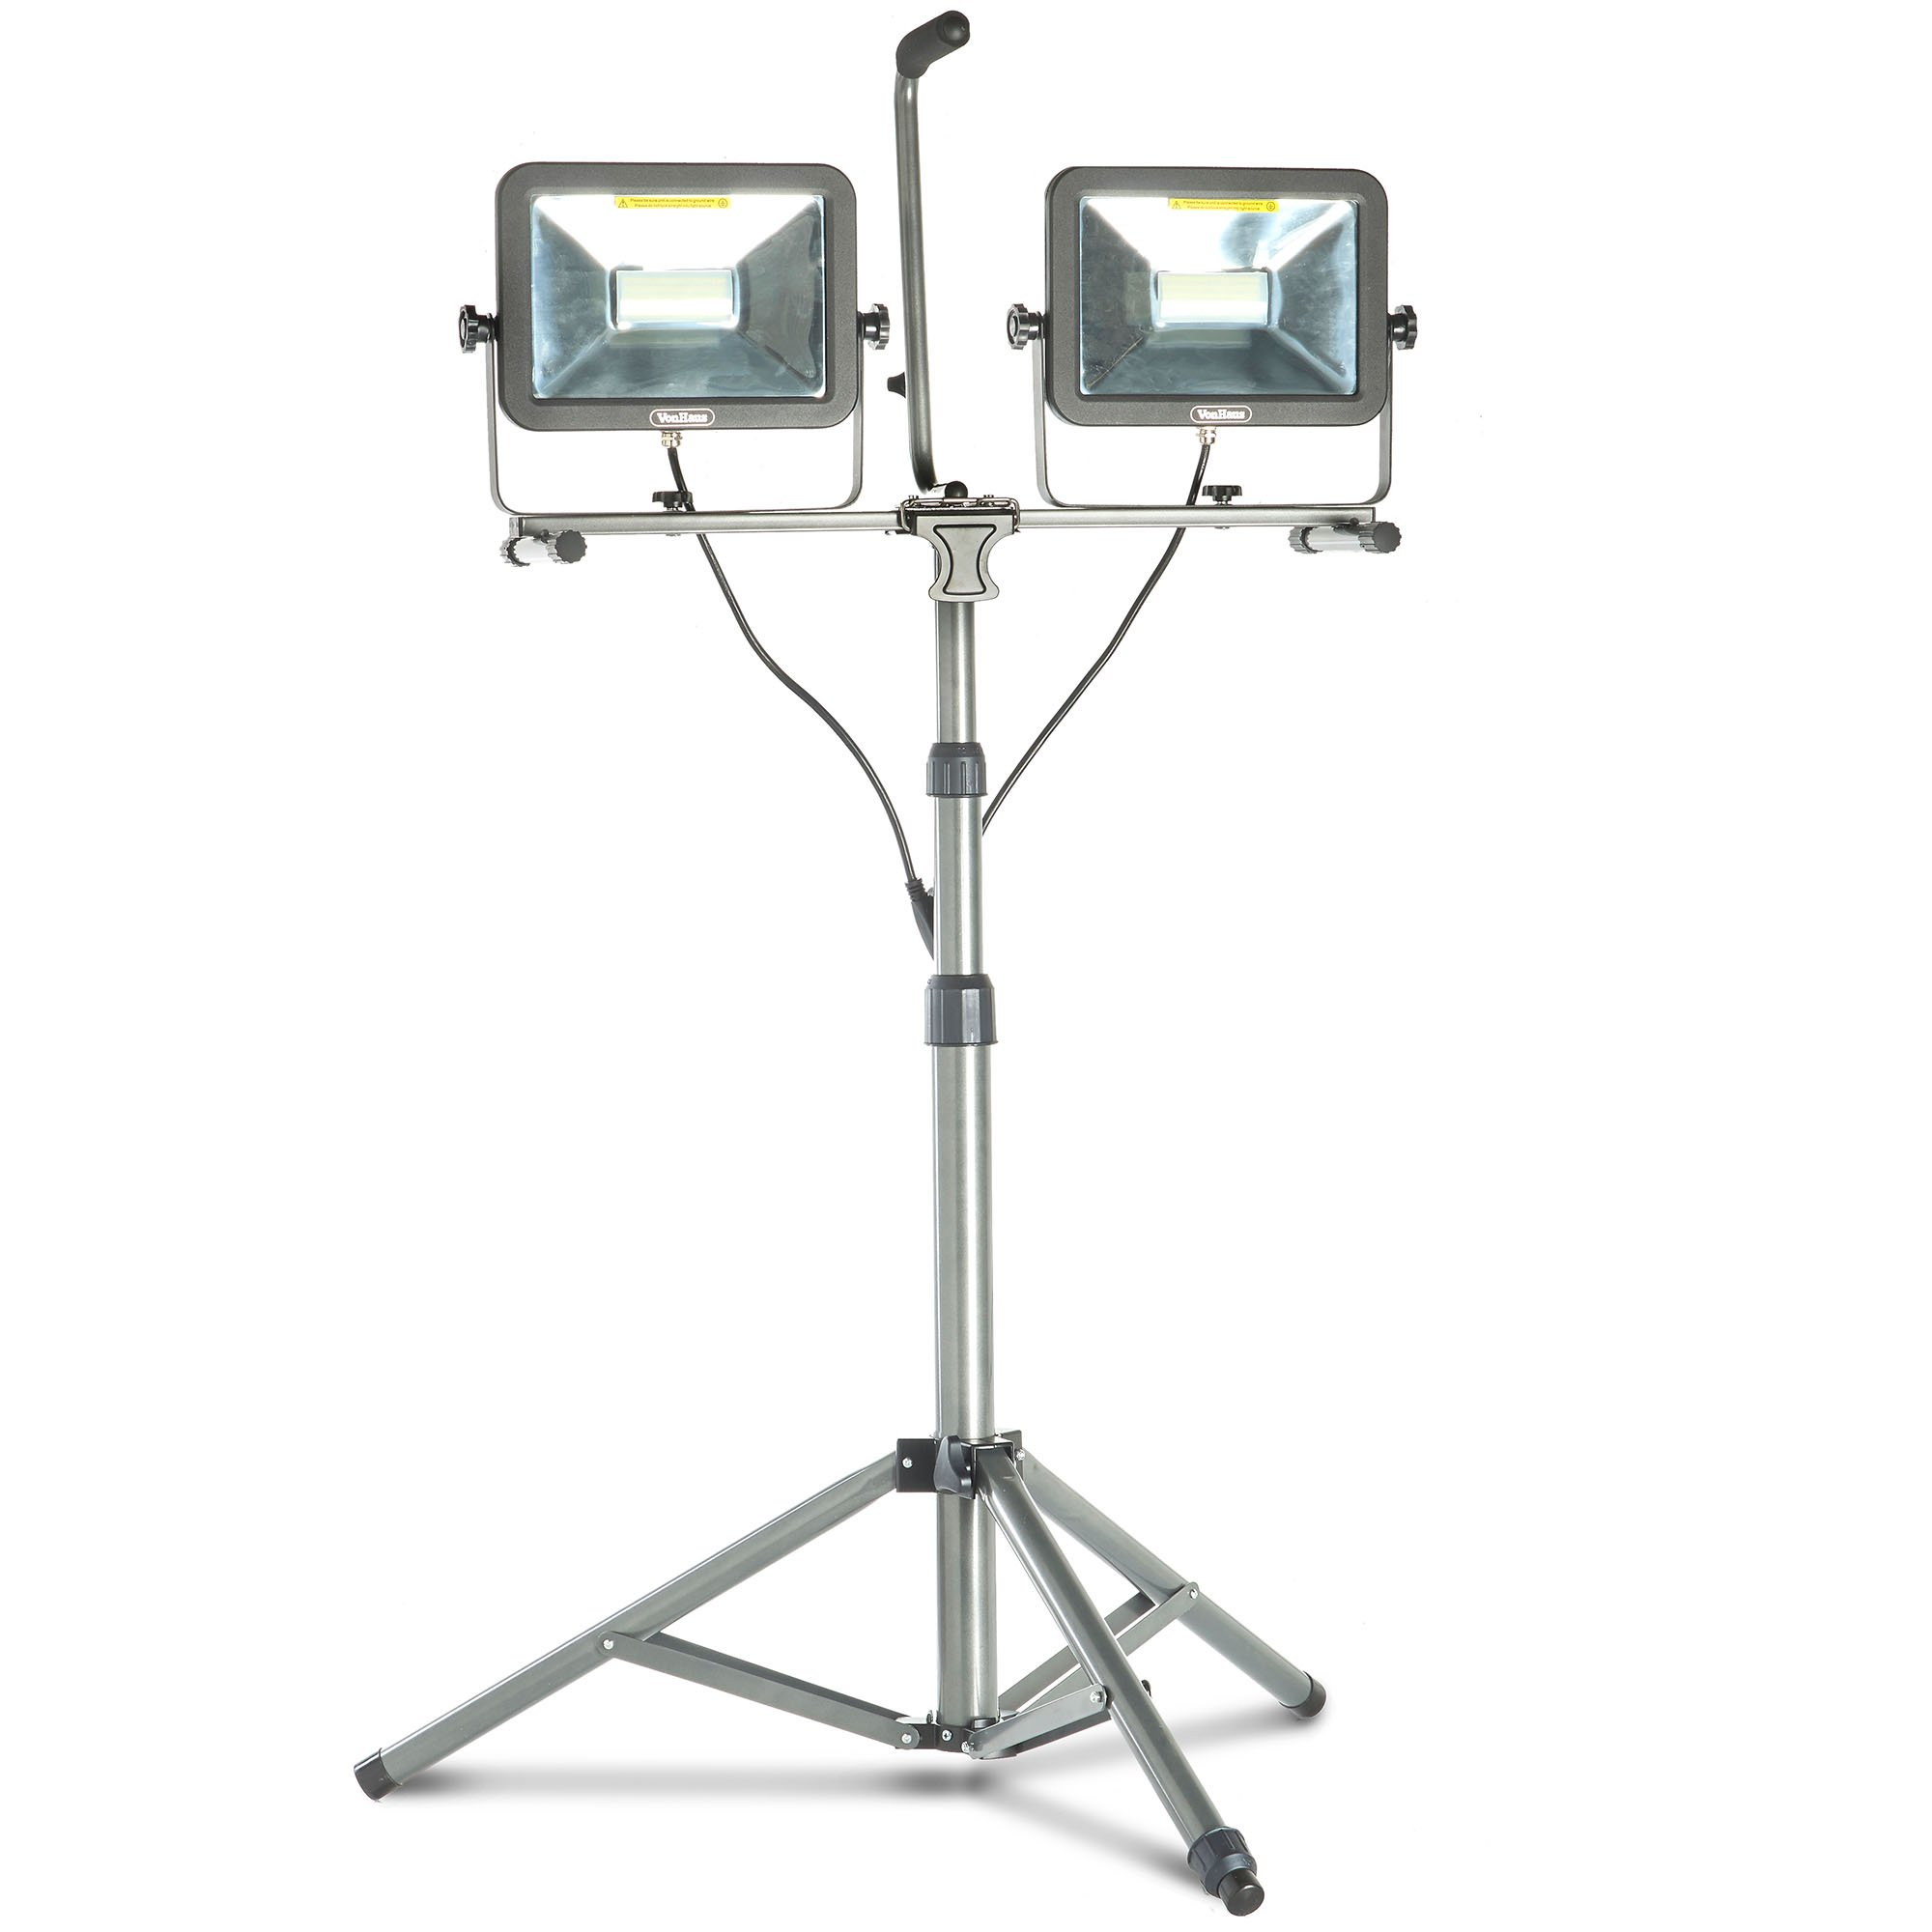 VonHaus Two-Head 10000 Lumen LED Work Light with Detachable Metal Lamp Housing, Metal Telescopic Tripod Stand, Rotating Waterproof Lamps and 8.2Ft Power Cord by VonHaus